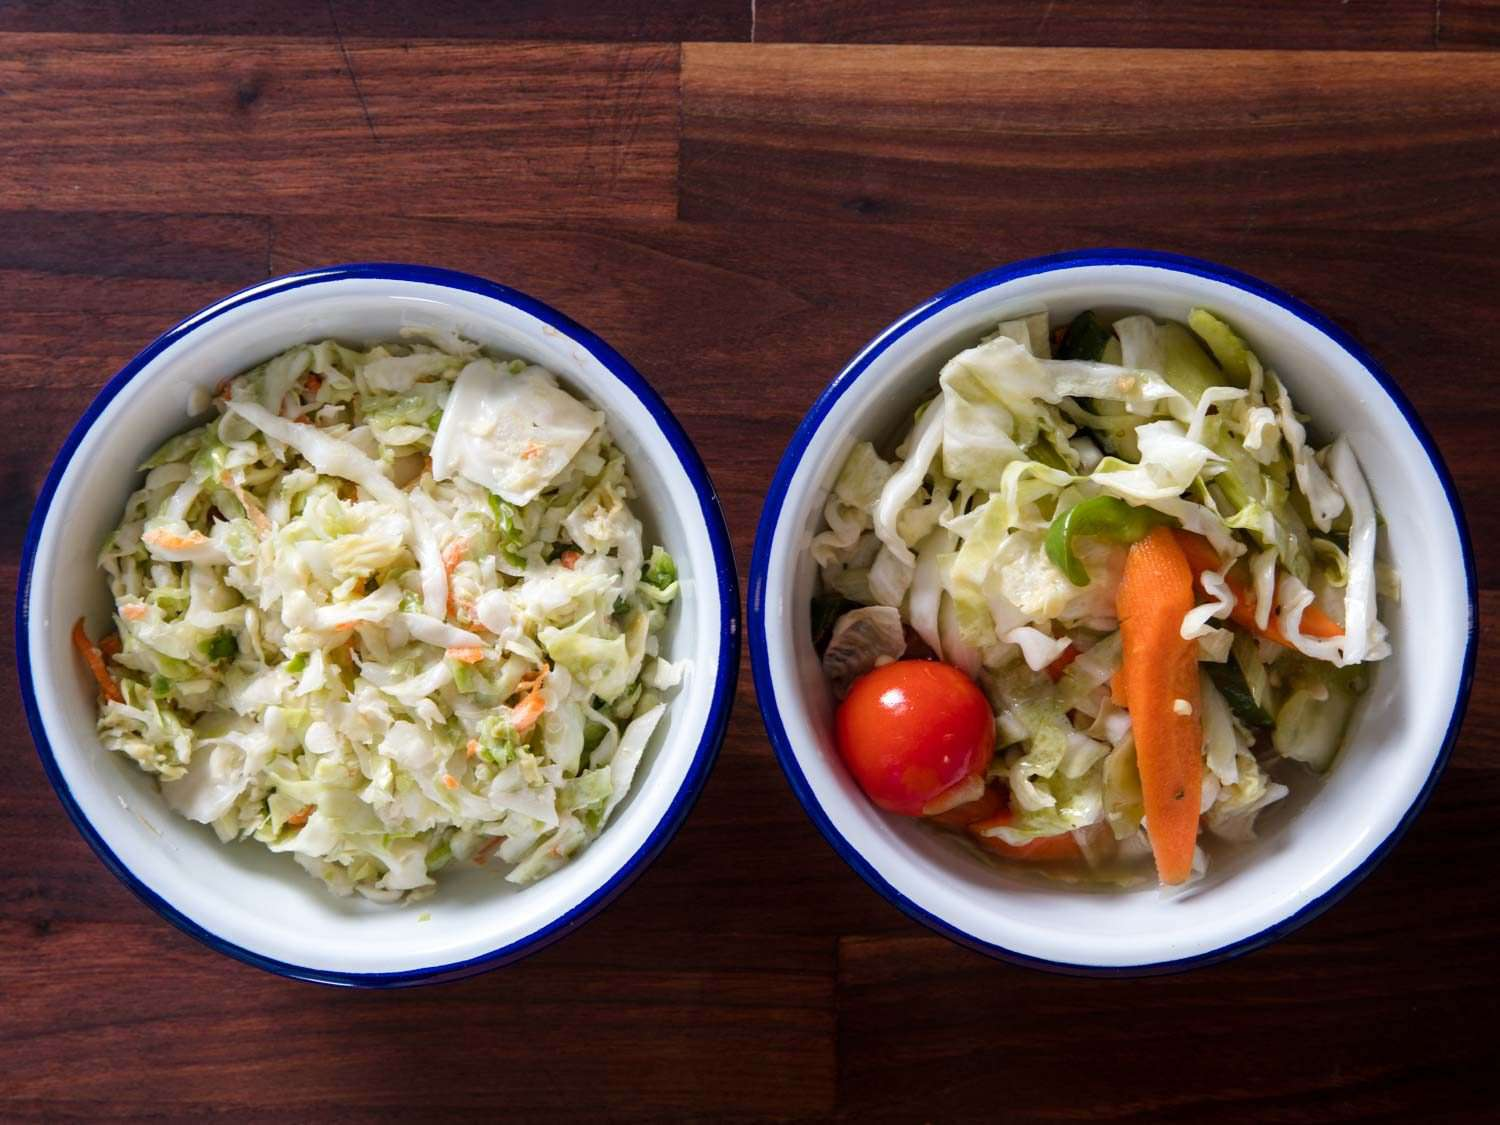 Coleslaw and health salad from Jewish deli in two bowls